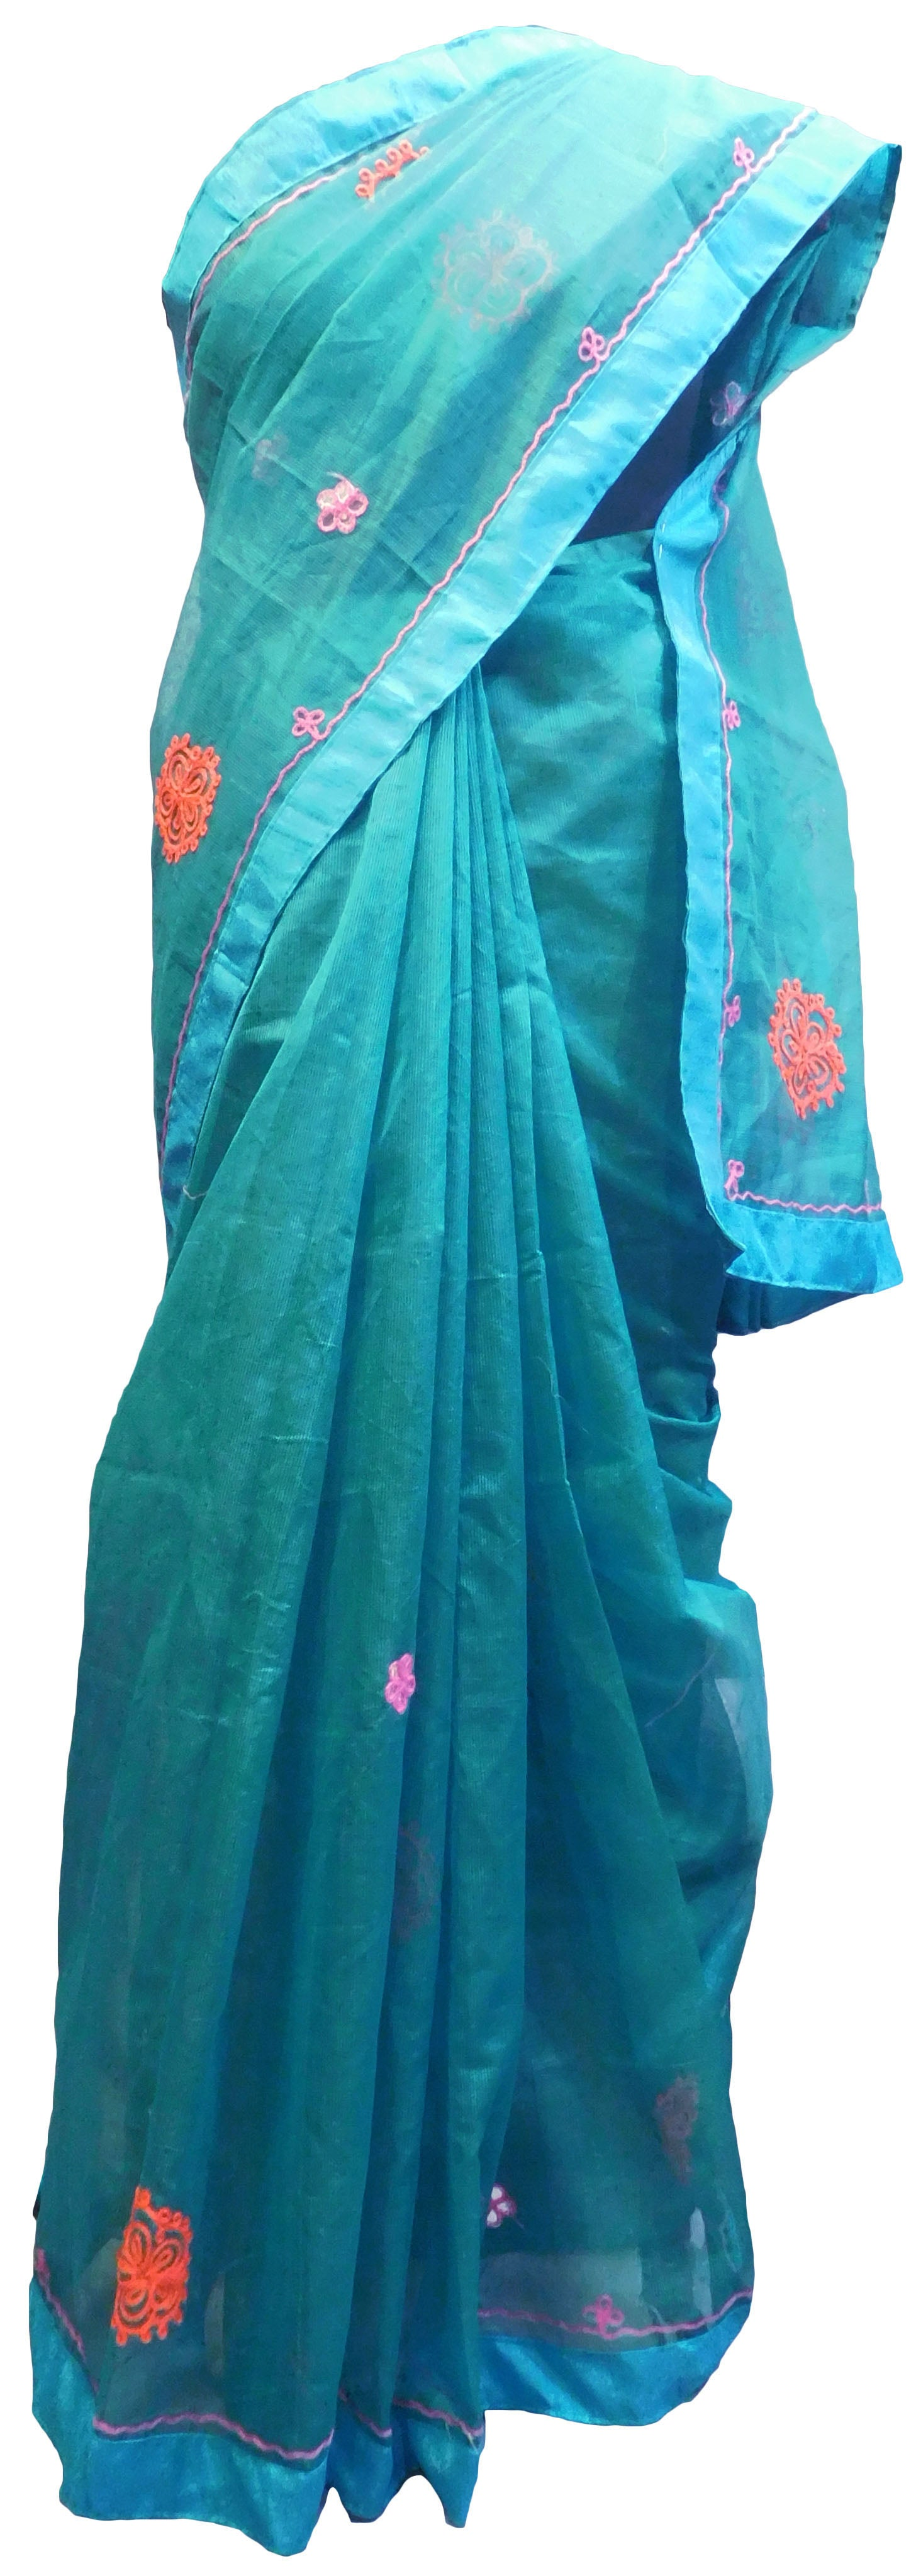 SMSAREE Turquoise Designer Wedding Partywear Supernet (Cotton) Thread Hand Embroidery Work Bridal Saree Sari With Blouse Piece E927